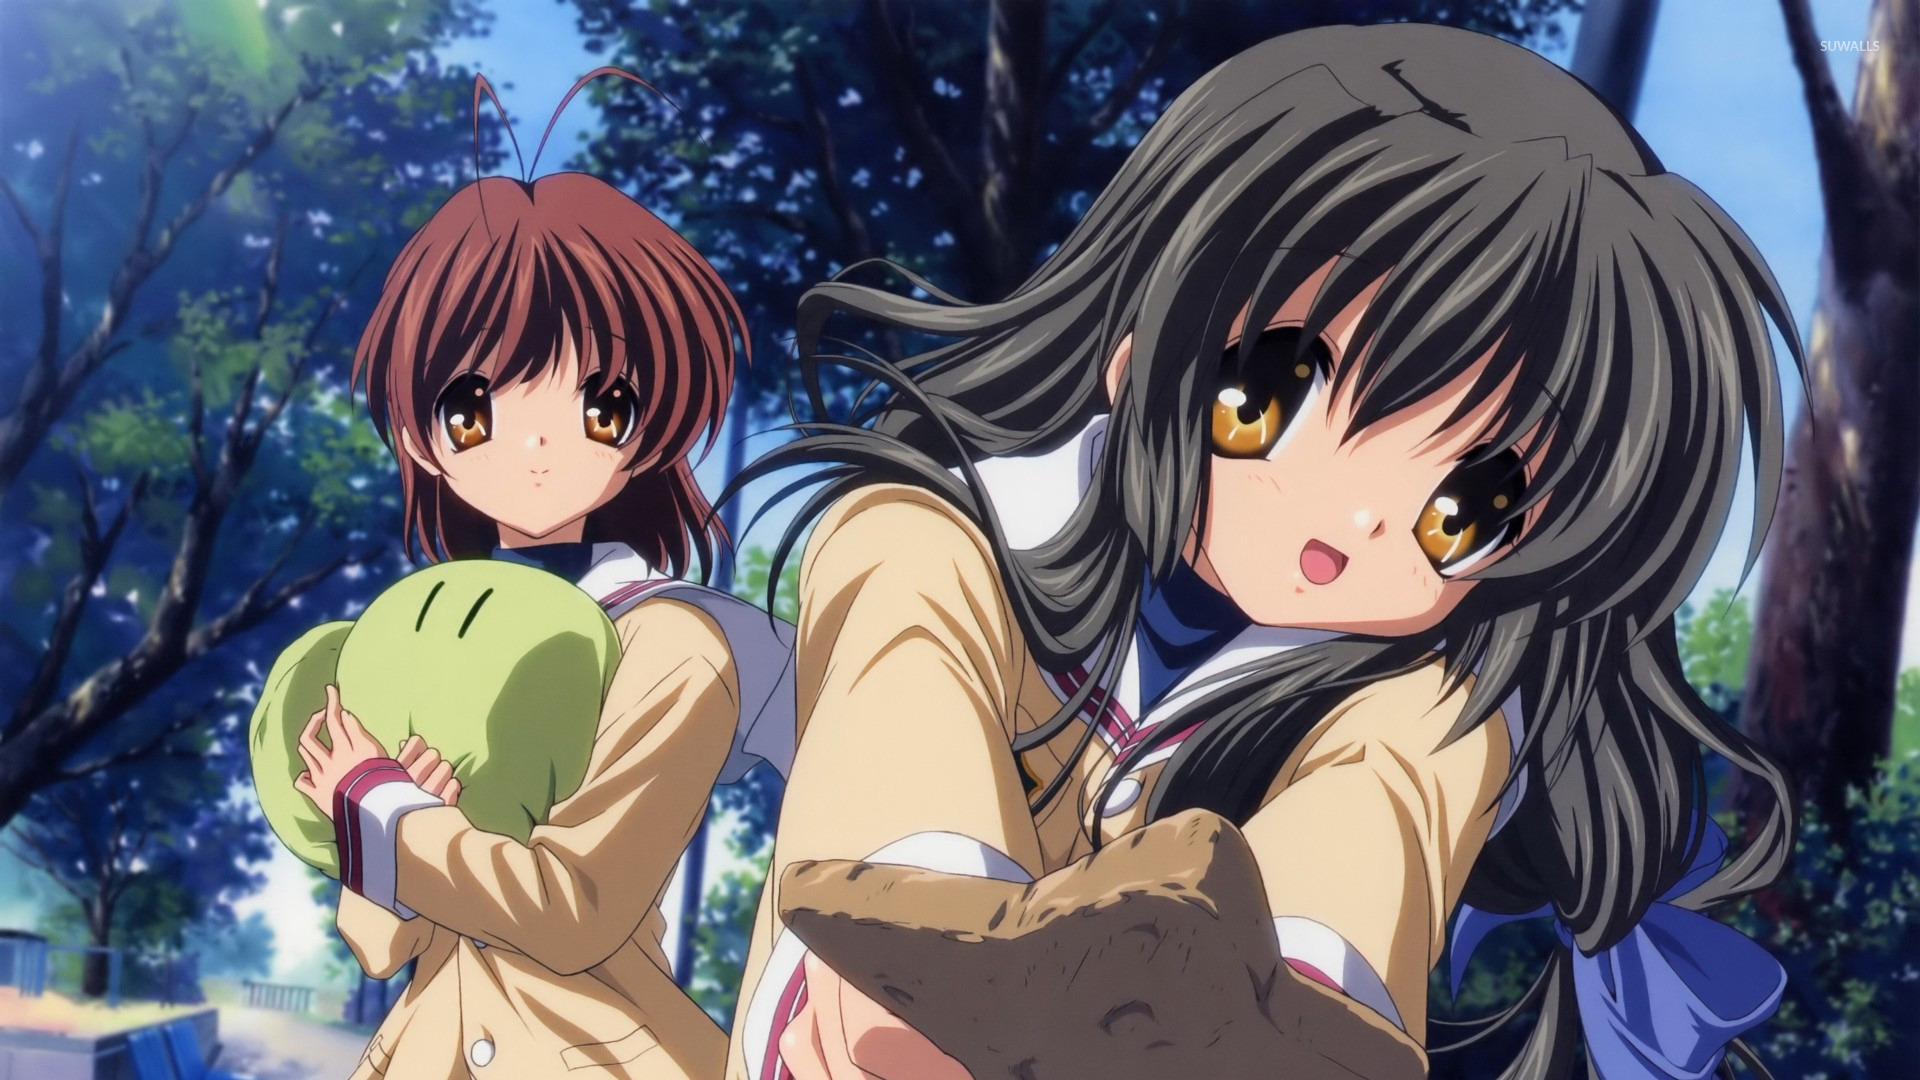 Clannad 4 Wallpaper Anime Wallpapers 33244